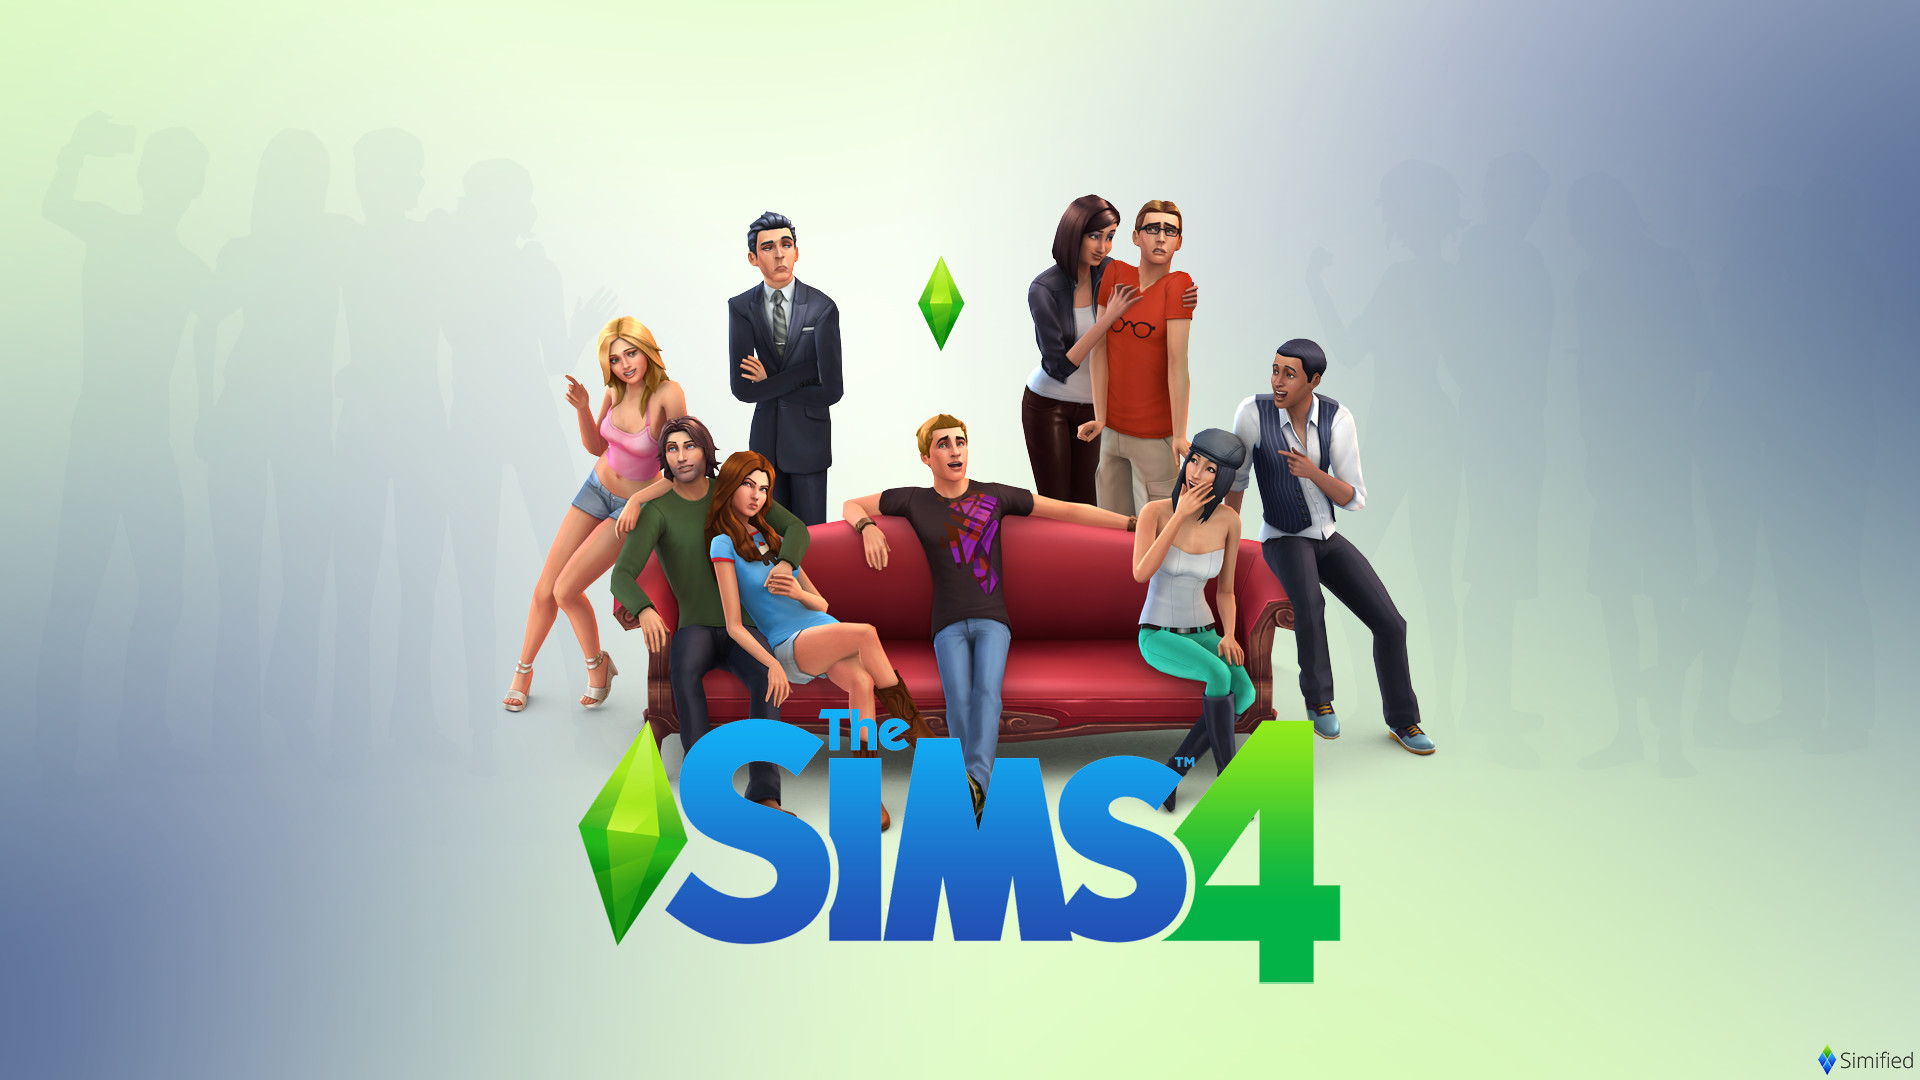 The Sims Wallpapers 85 Images